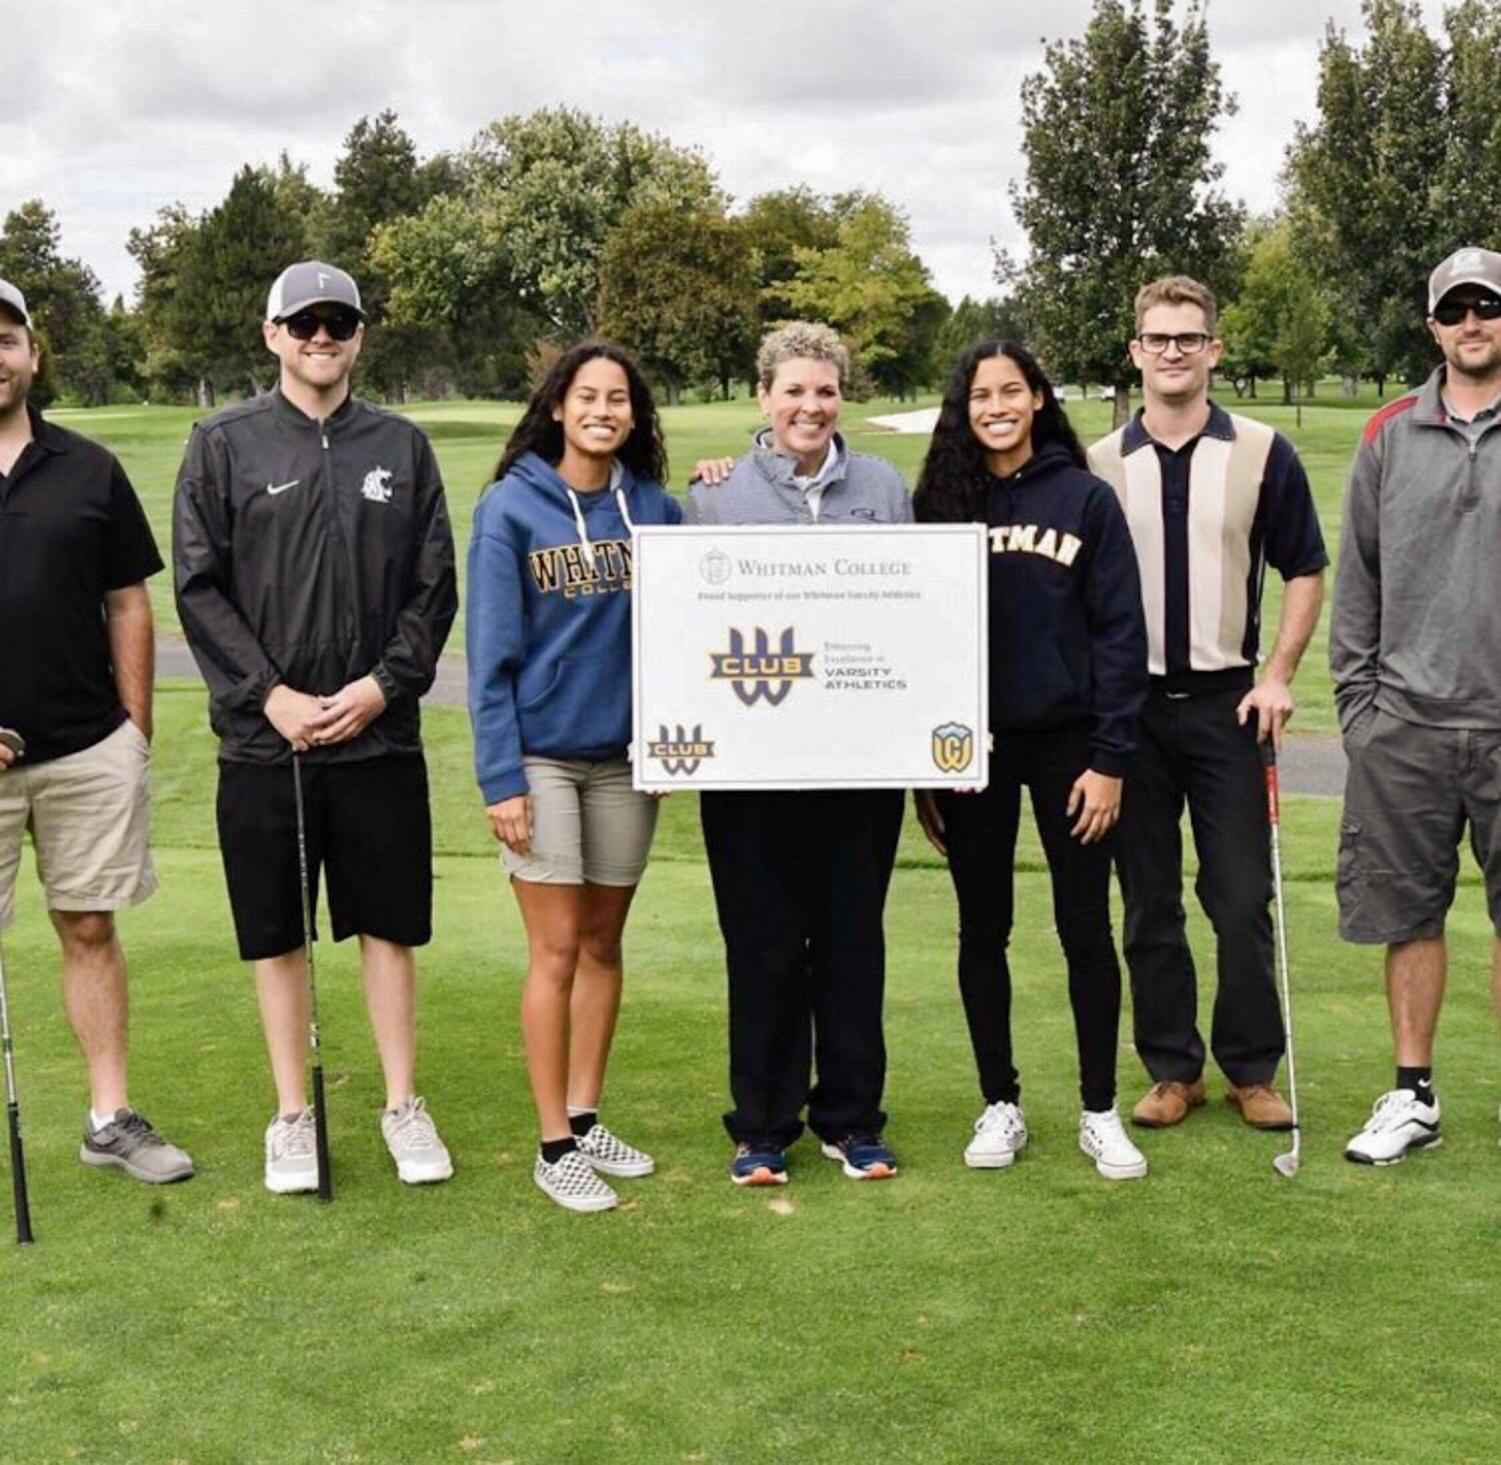 First-year basketball players Caira Young and Shaira Young pose with Kim Chandler and participants of the W Club golf tournament. Photo contributed by Shira Young